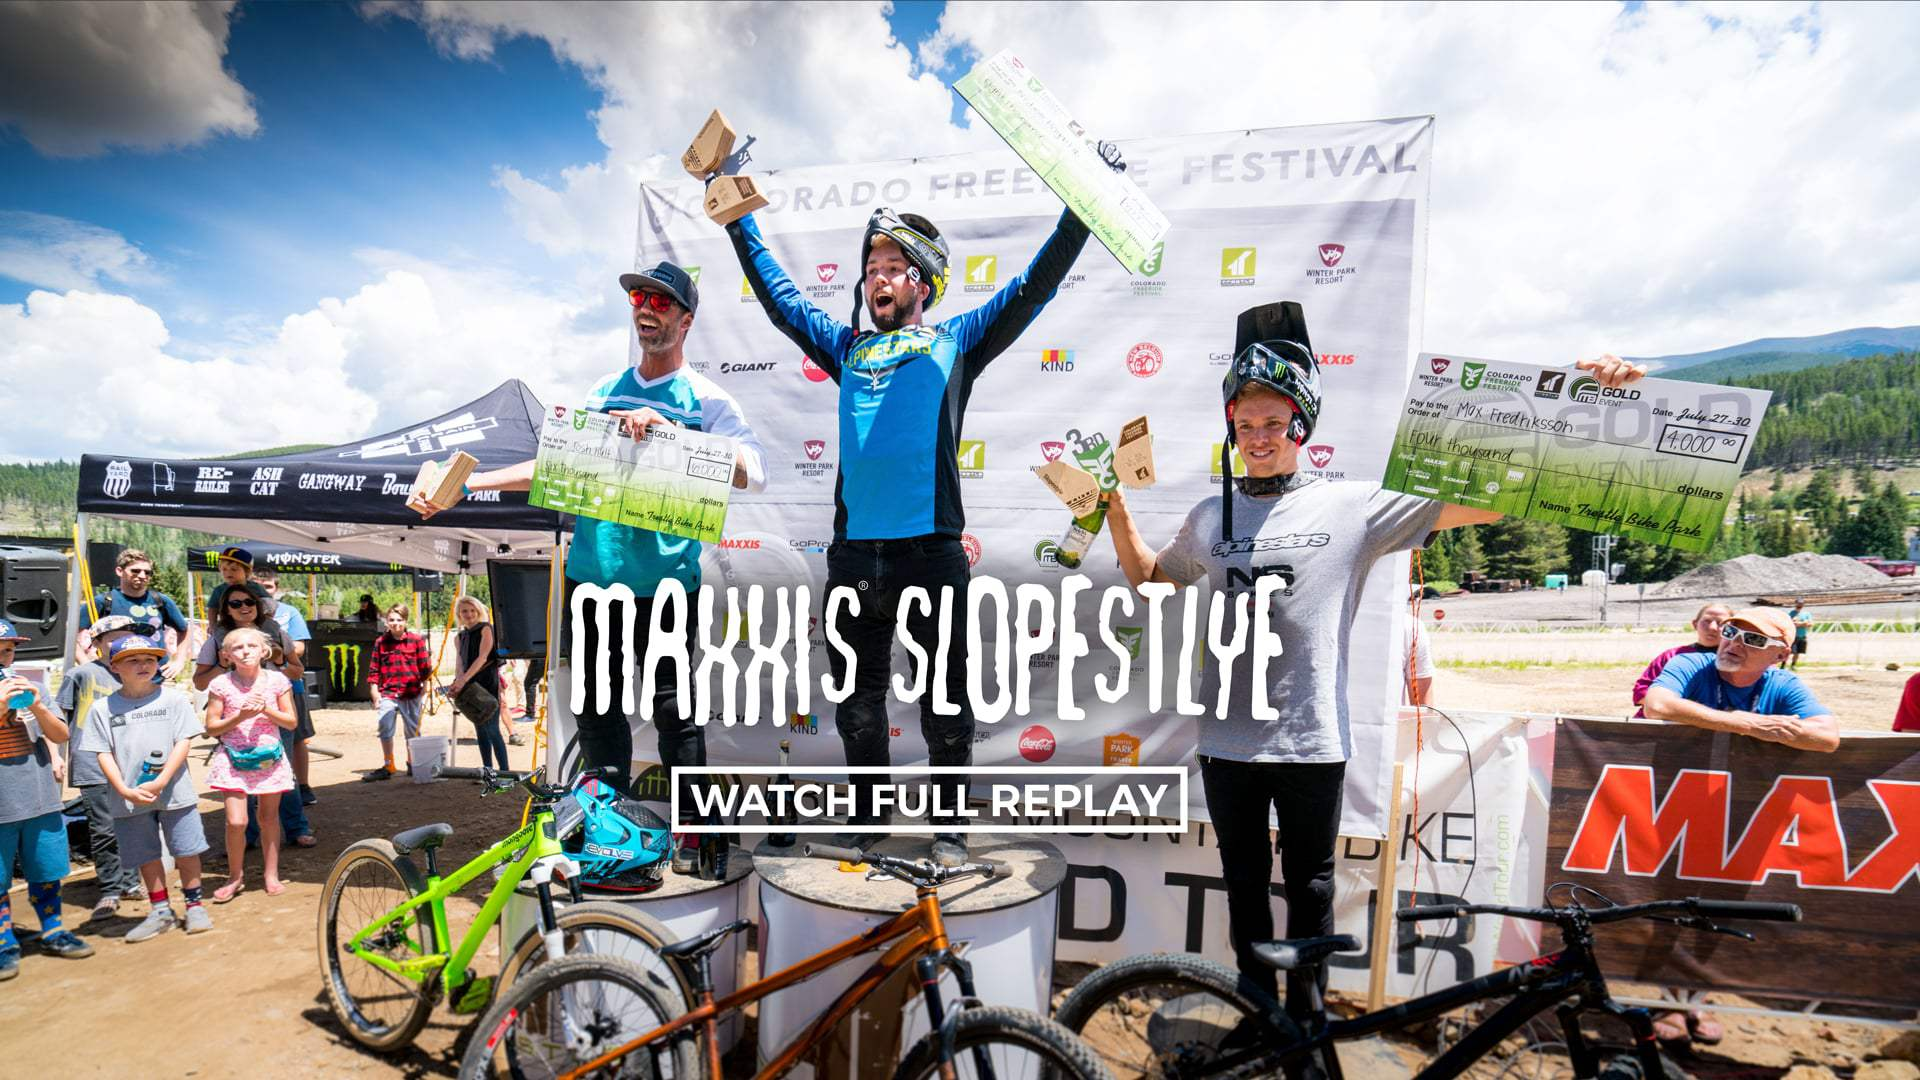 Maxxis Slopestyle at Colorado Freeride Festival